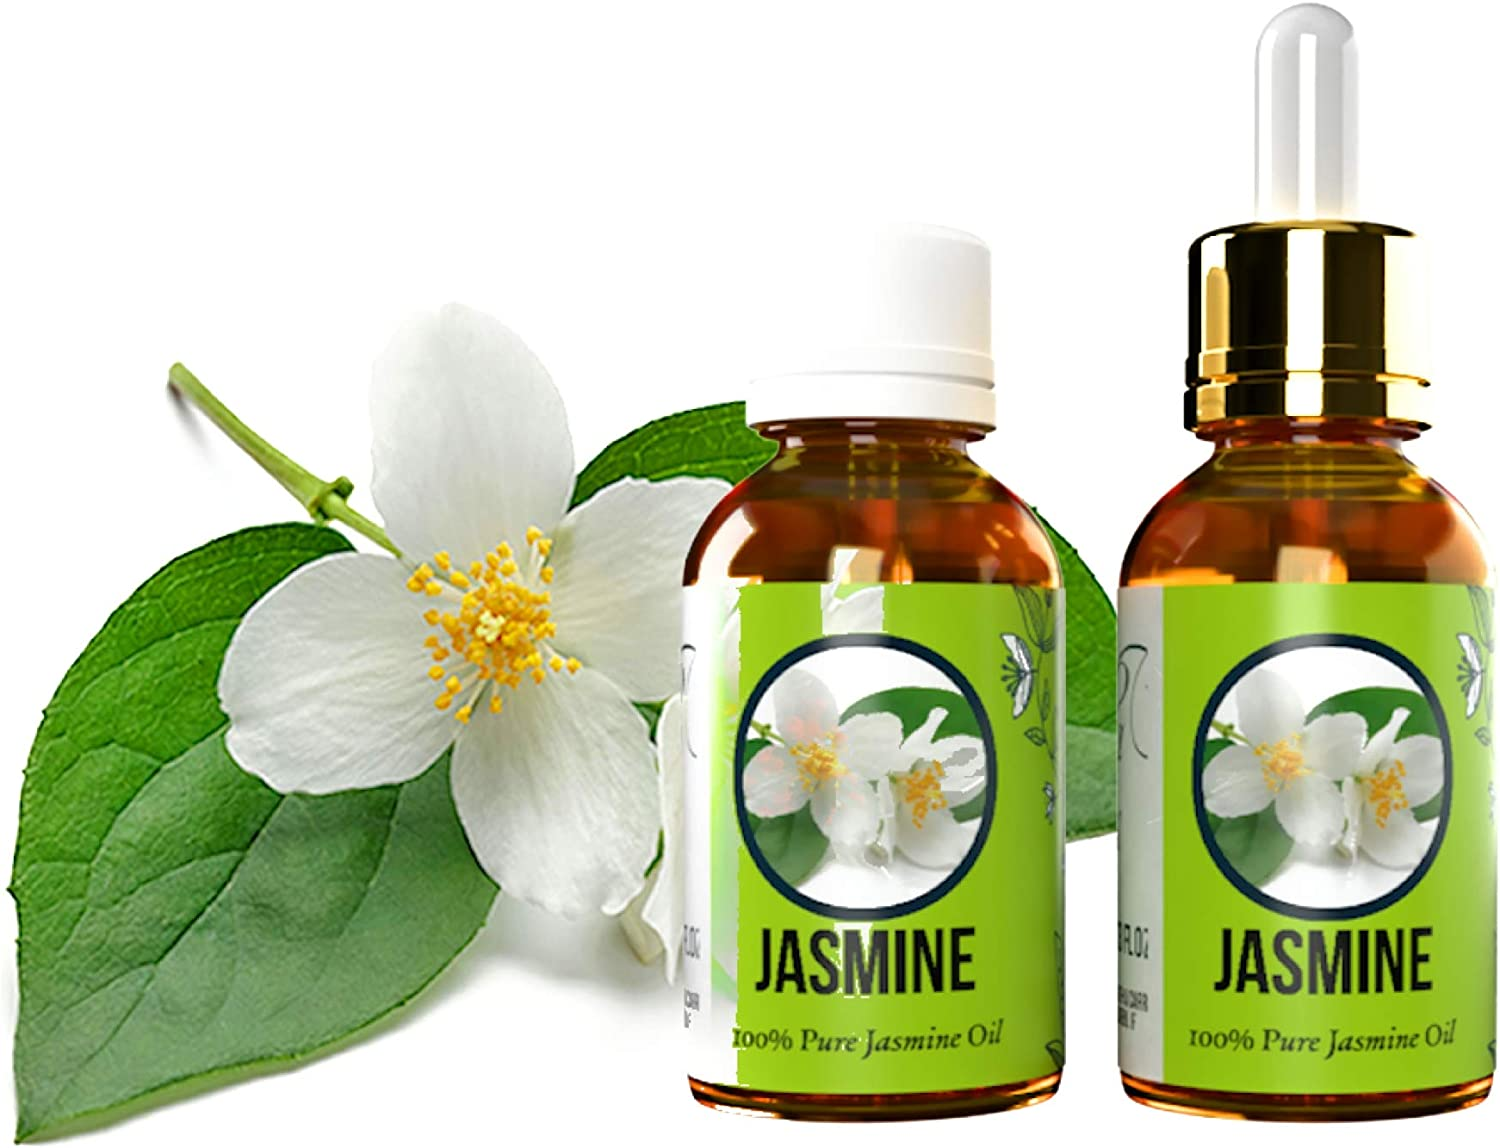 Aromazotika Jasmine Absolute Essential Oil - Pure, Natural, Therapeutic Grade & Undiluted (2 Bottles 10+10=20ml)